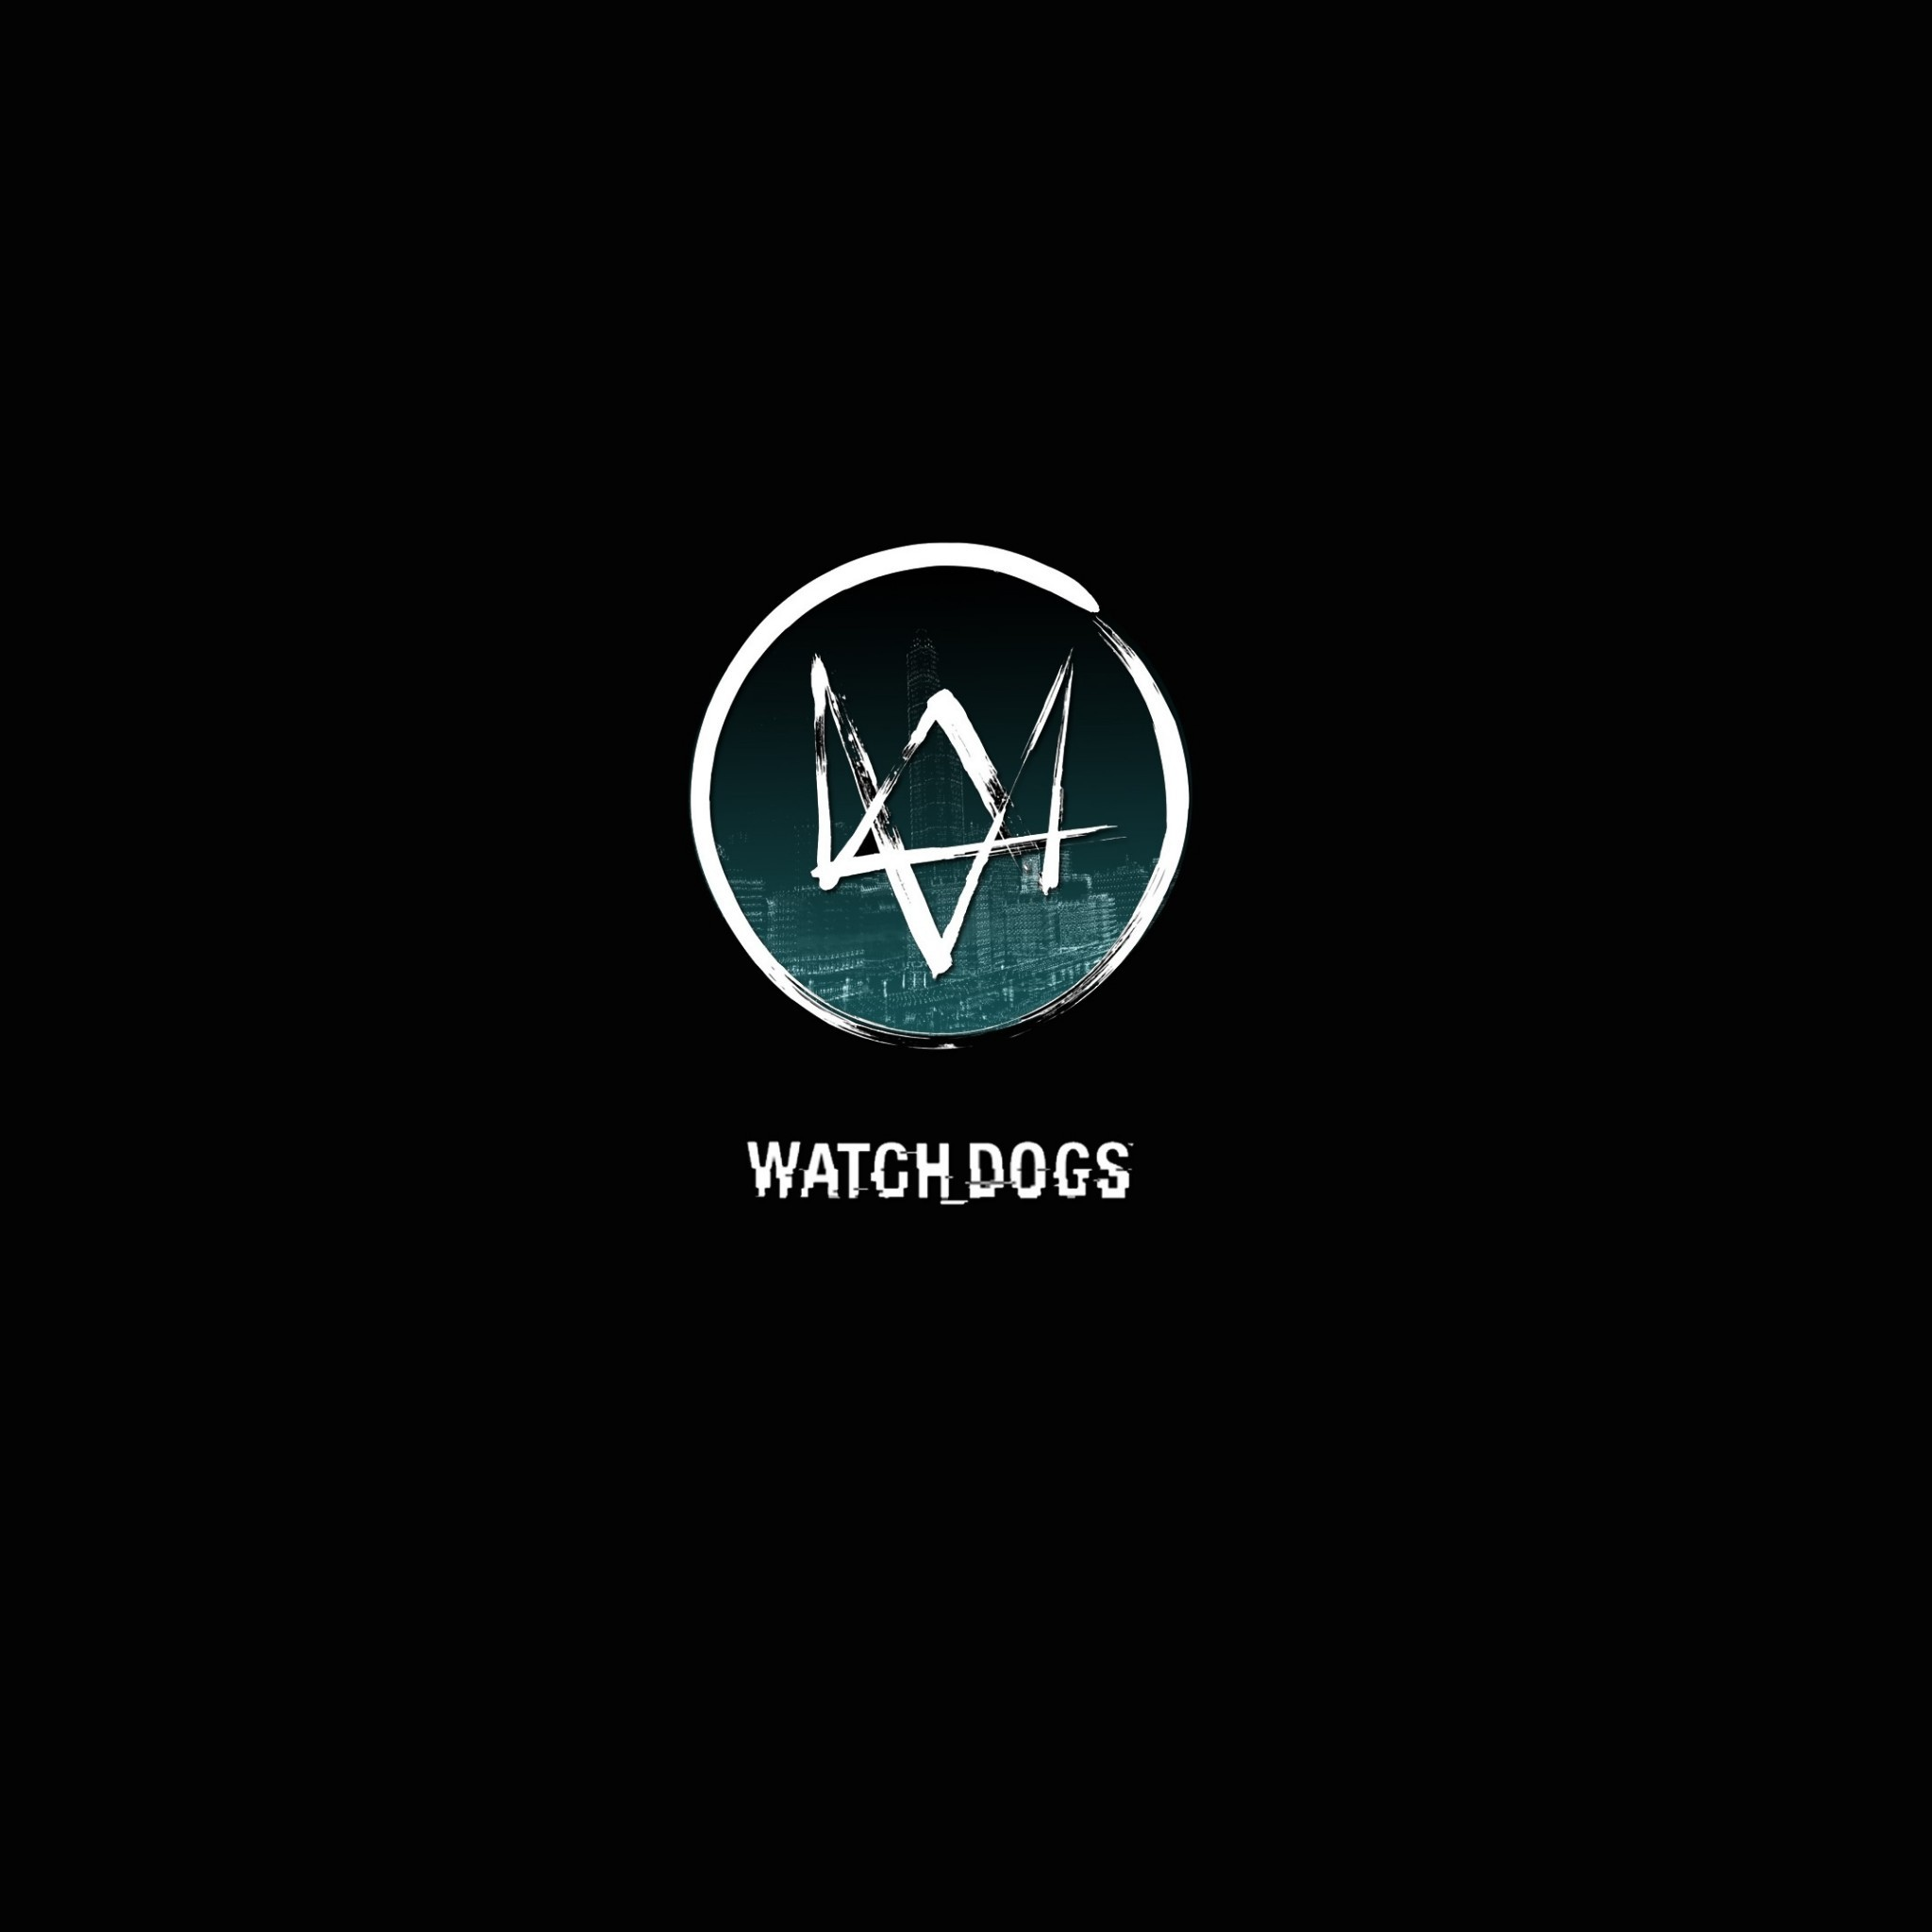 Watch Dogs Logo – Tap to see awesome Watch Dog wallpapers!